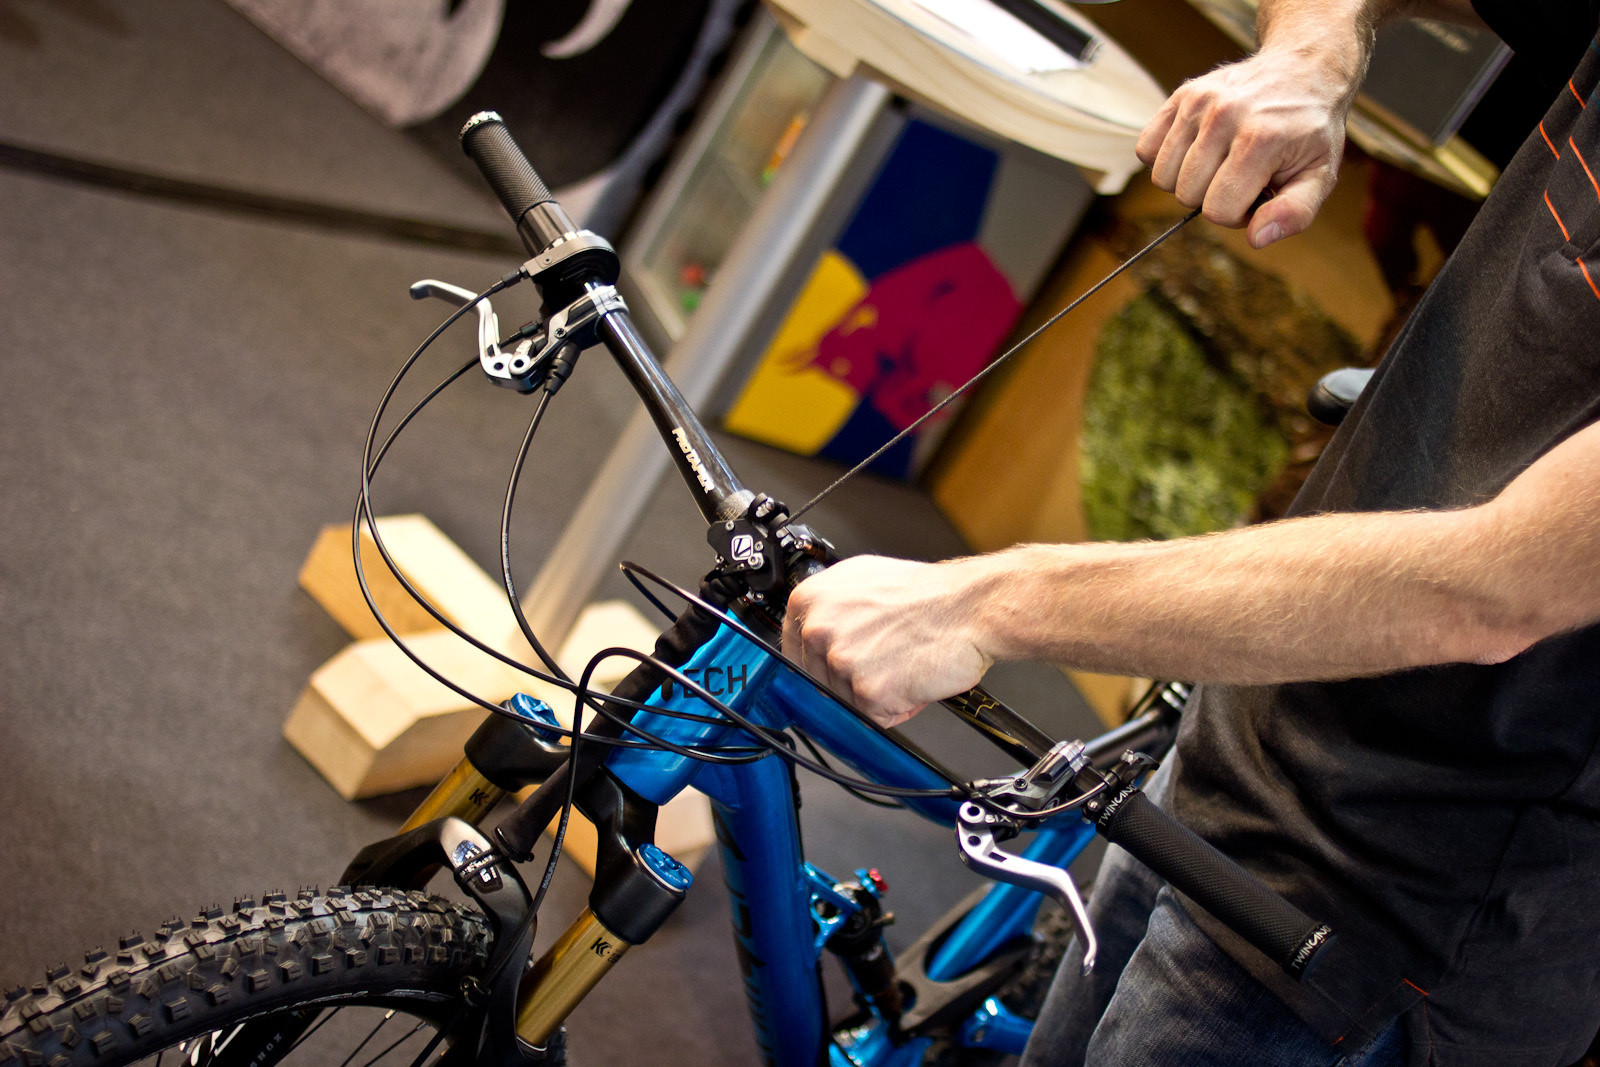 Vecnum Leveloc Fork Travel Reducer - 2014 Mountain Bike Components at Eurobike 2013 - Mountain Biking Pictures - Vital MTB